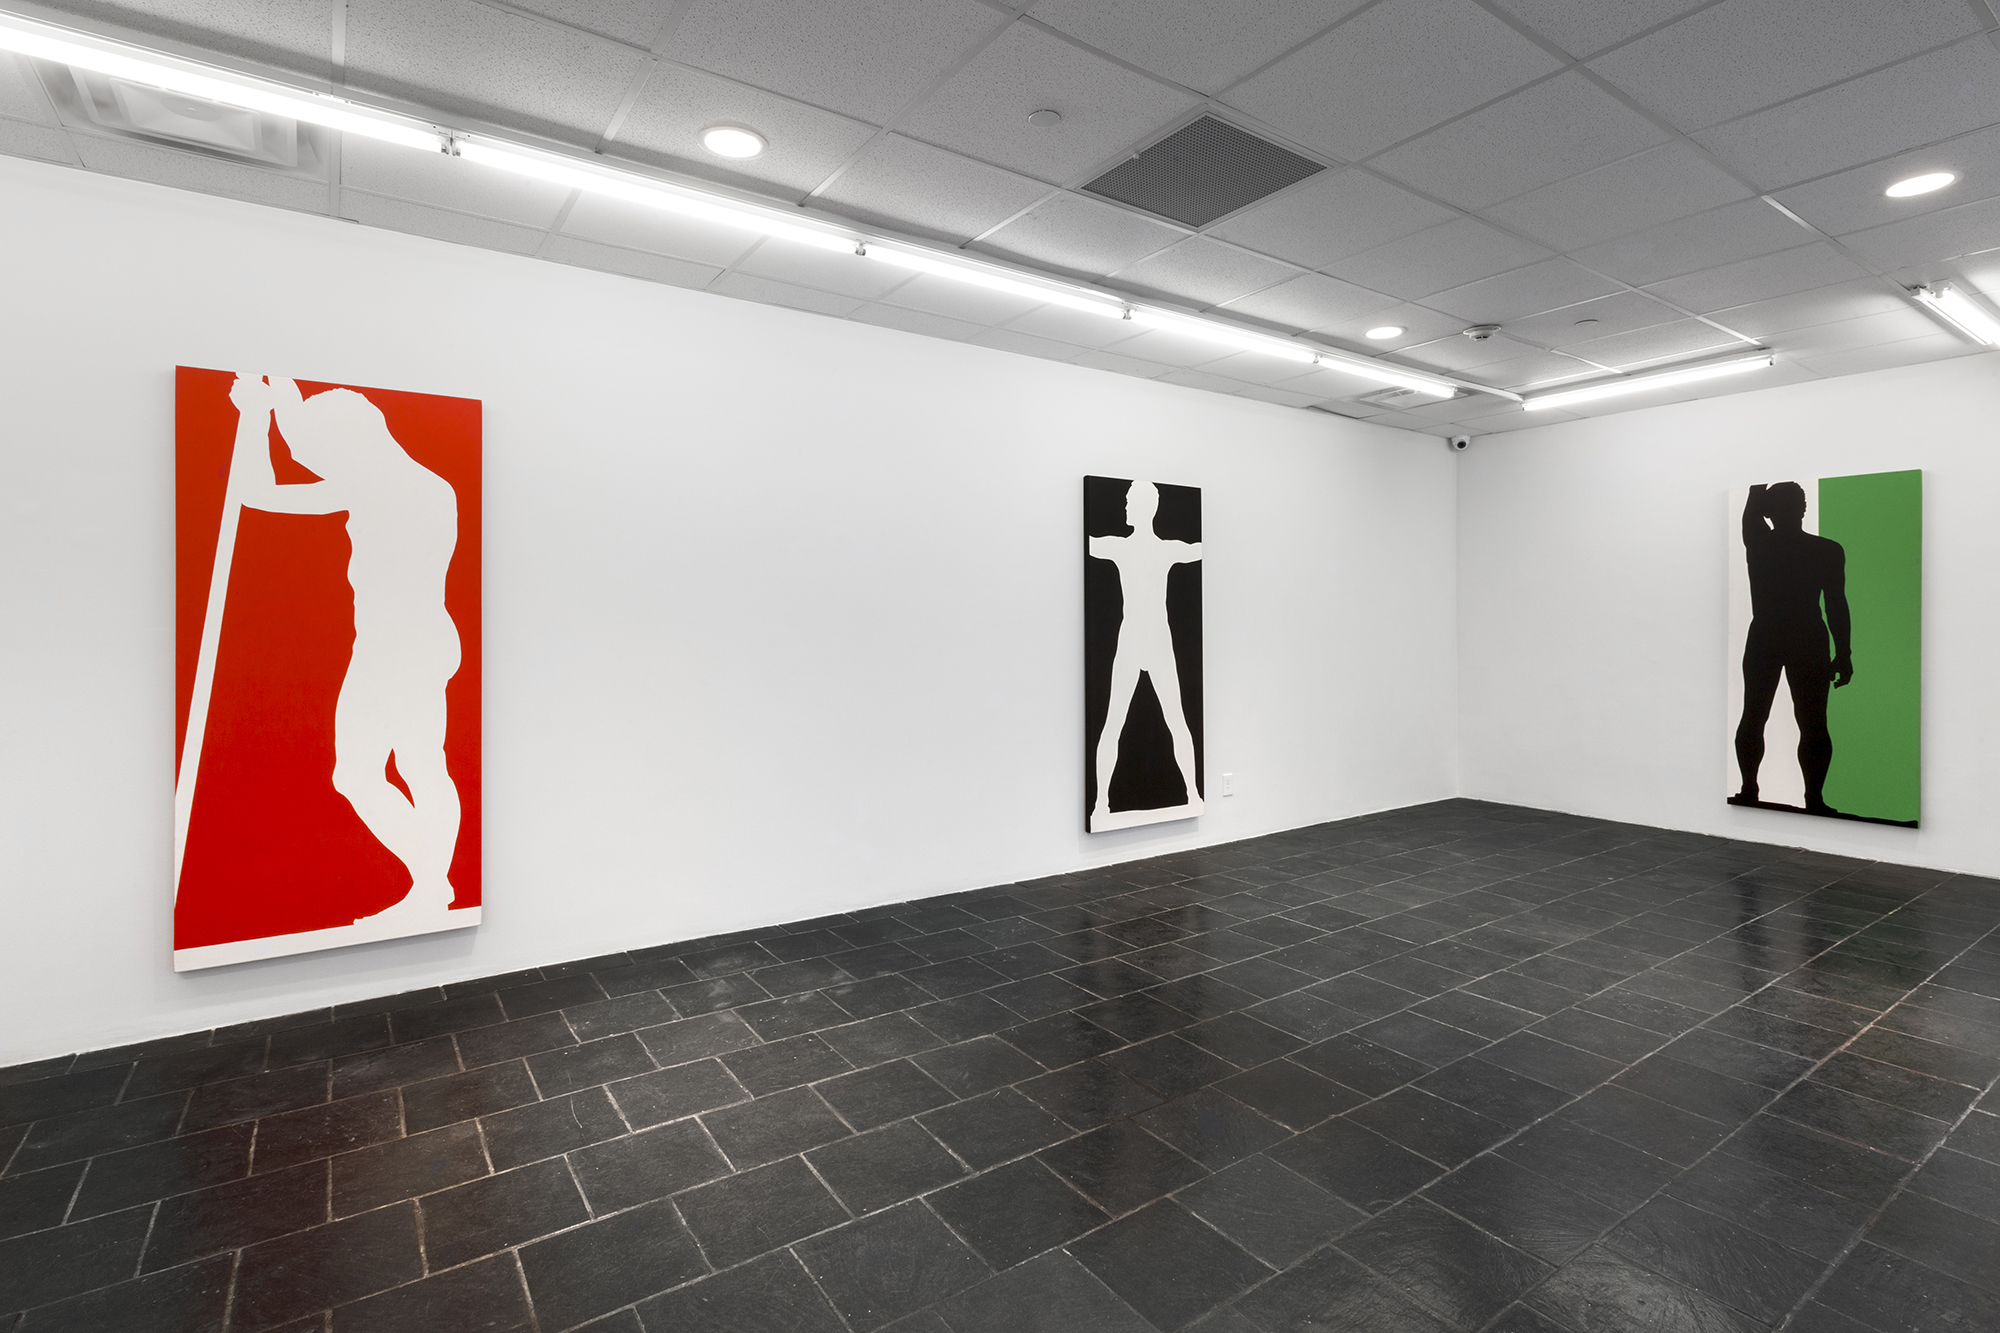 Installation View of Kendall Shaw's John Giorno Dancing (1963) © Kendall Shaw, Photo Credit: Daniel Pérez